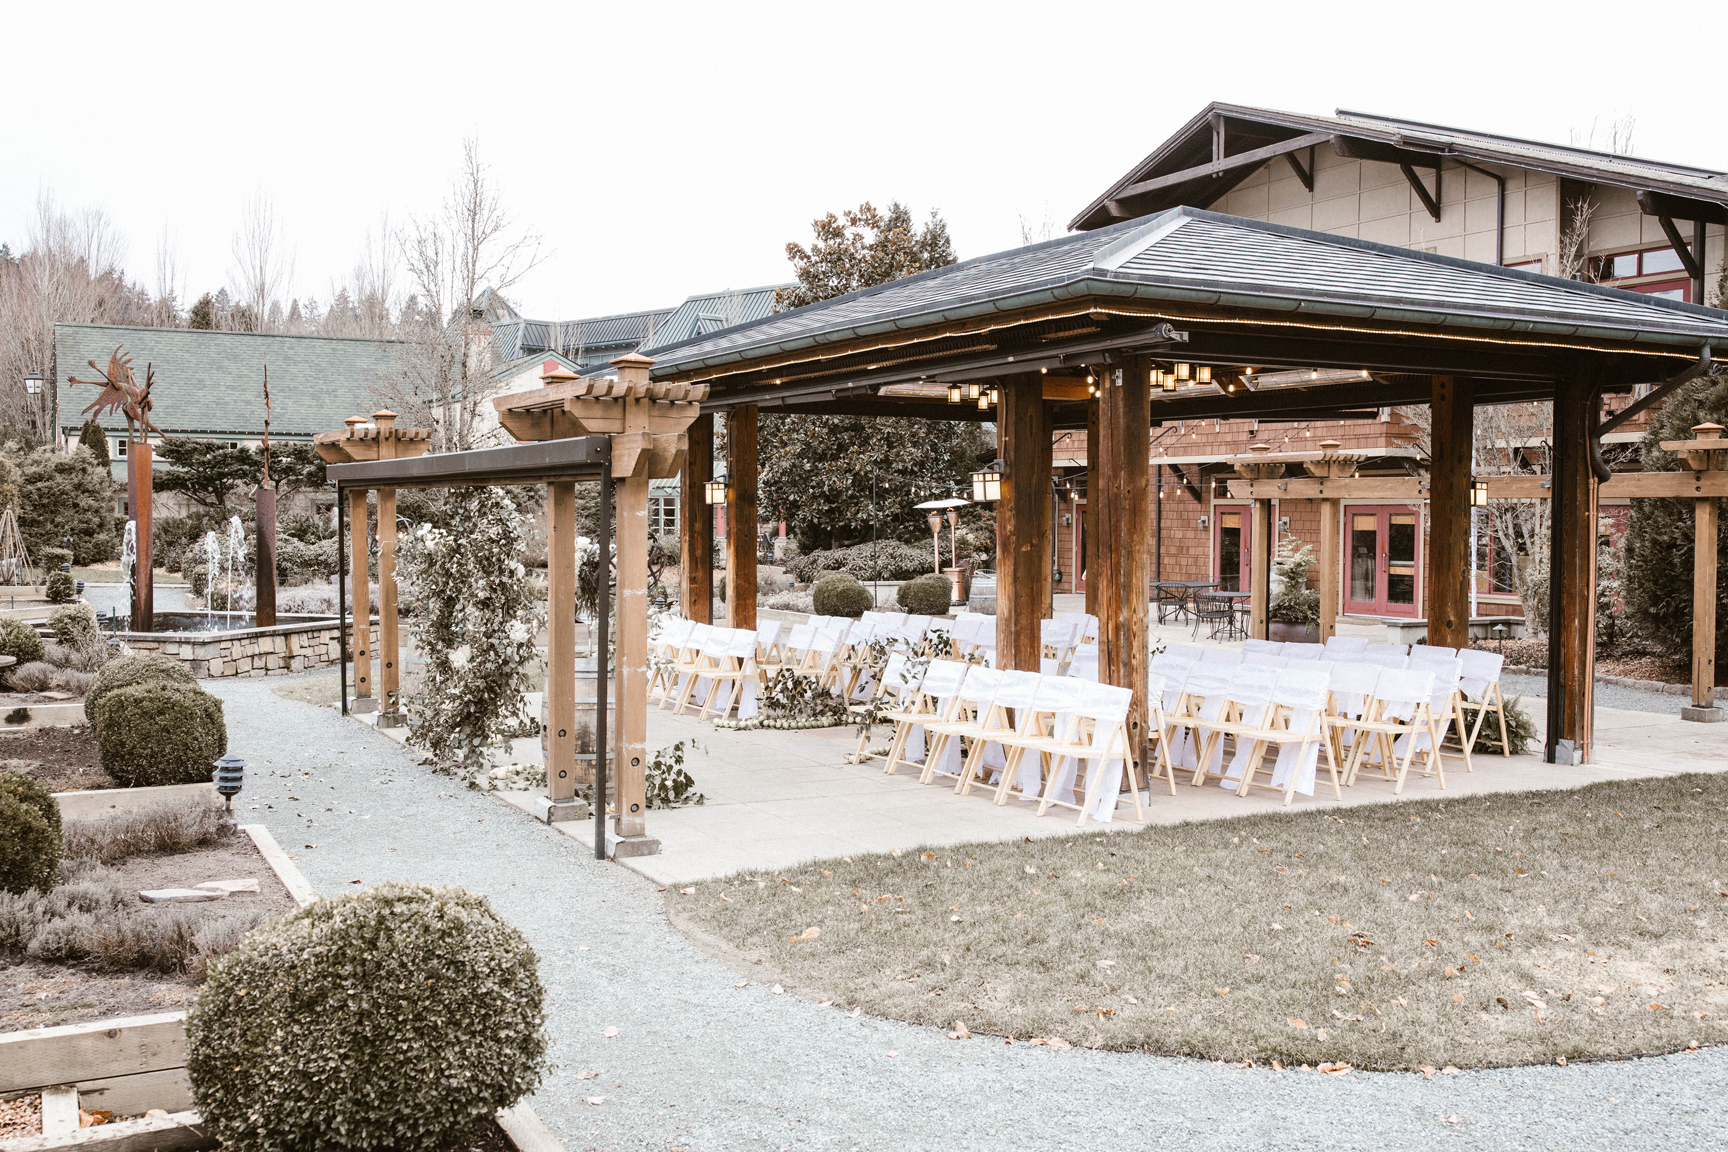 Willows+Lodge_Woodinville_2017_Weddings+In+Woodinville203.jpg